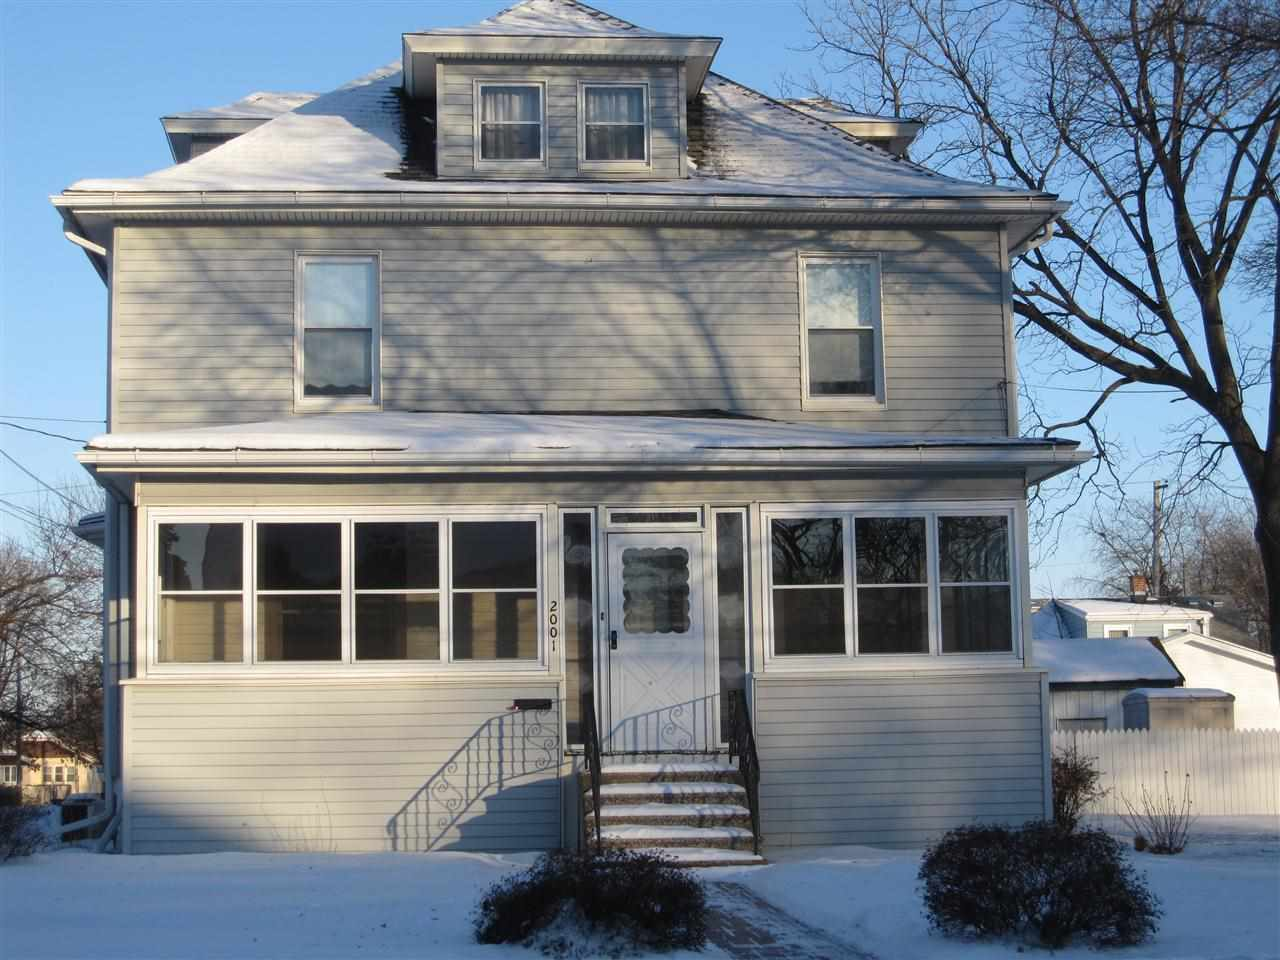 Rental Homes for Rent, ListingId:33296662, location: 2001 30TH Street Rock Island 61201